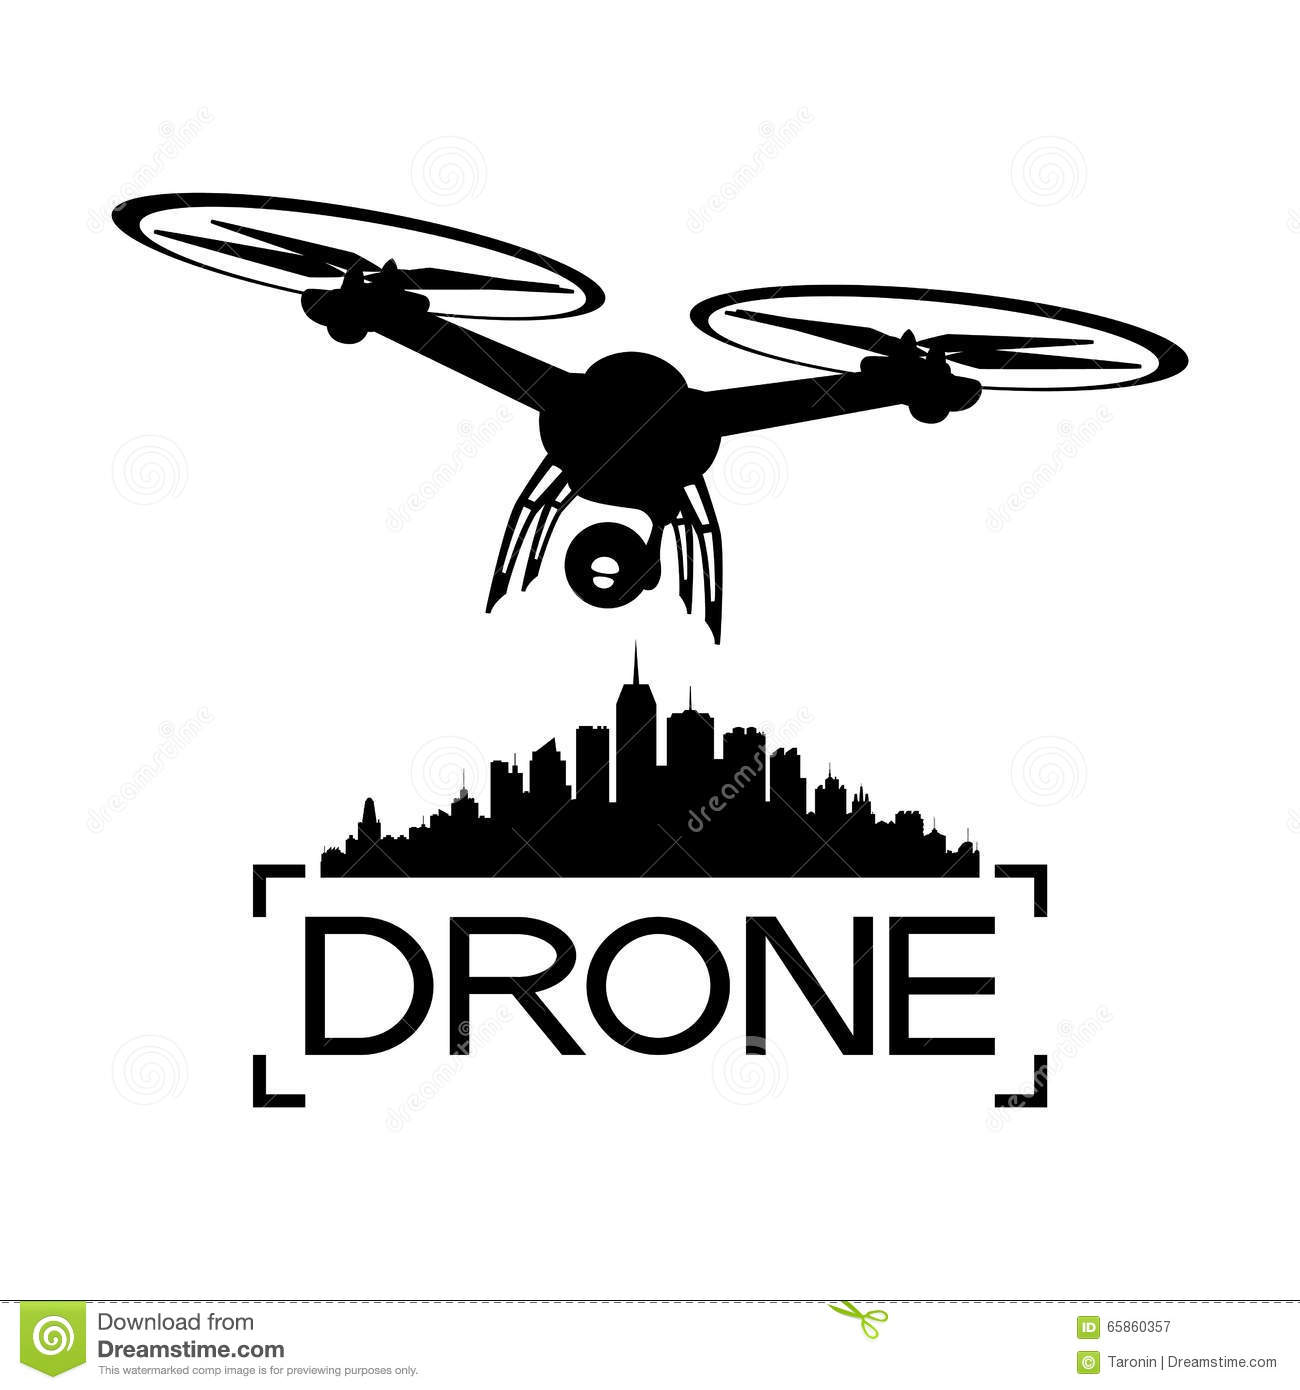 Drone Royalty Free Stock Image